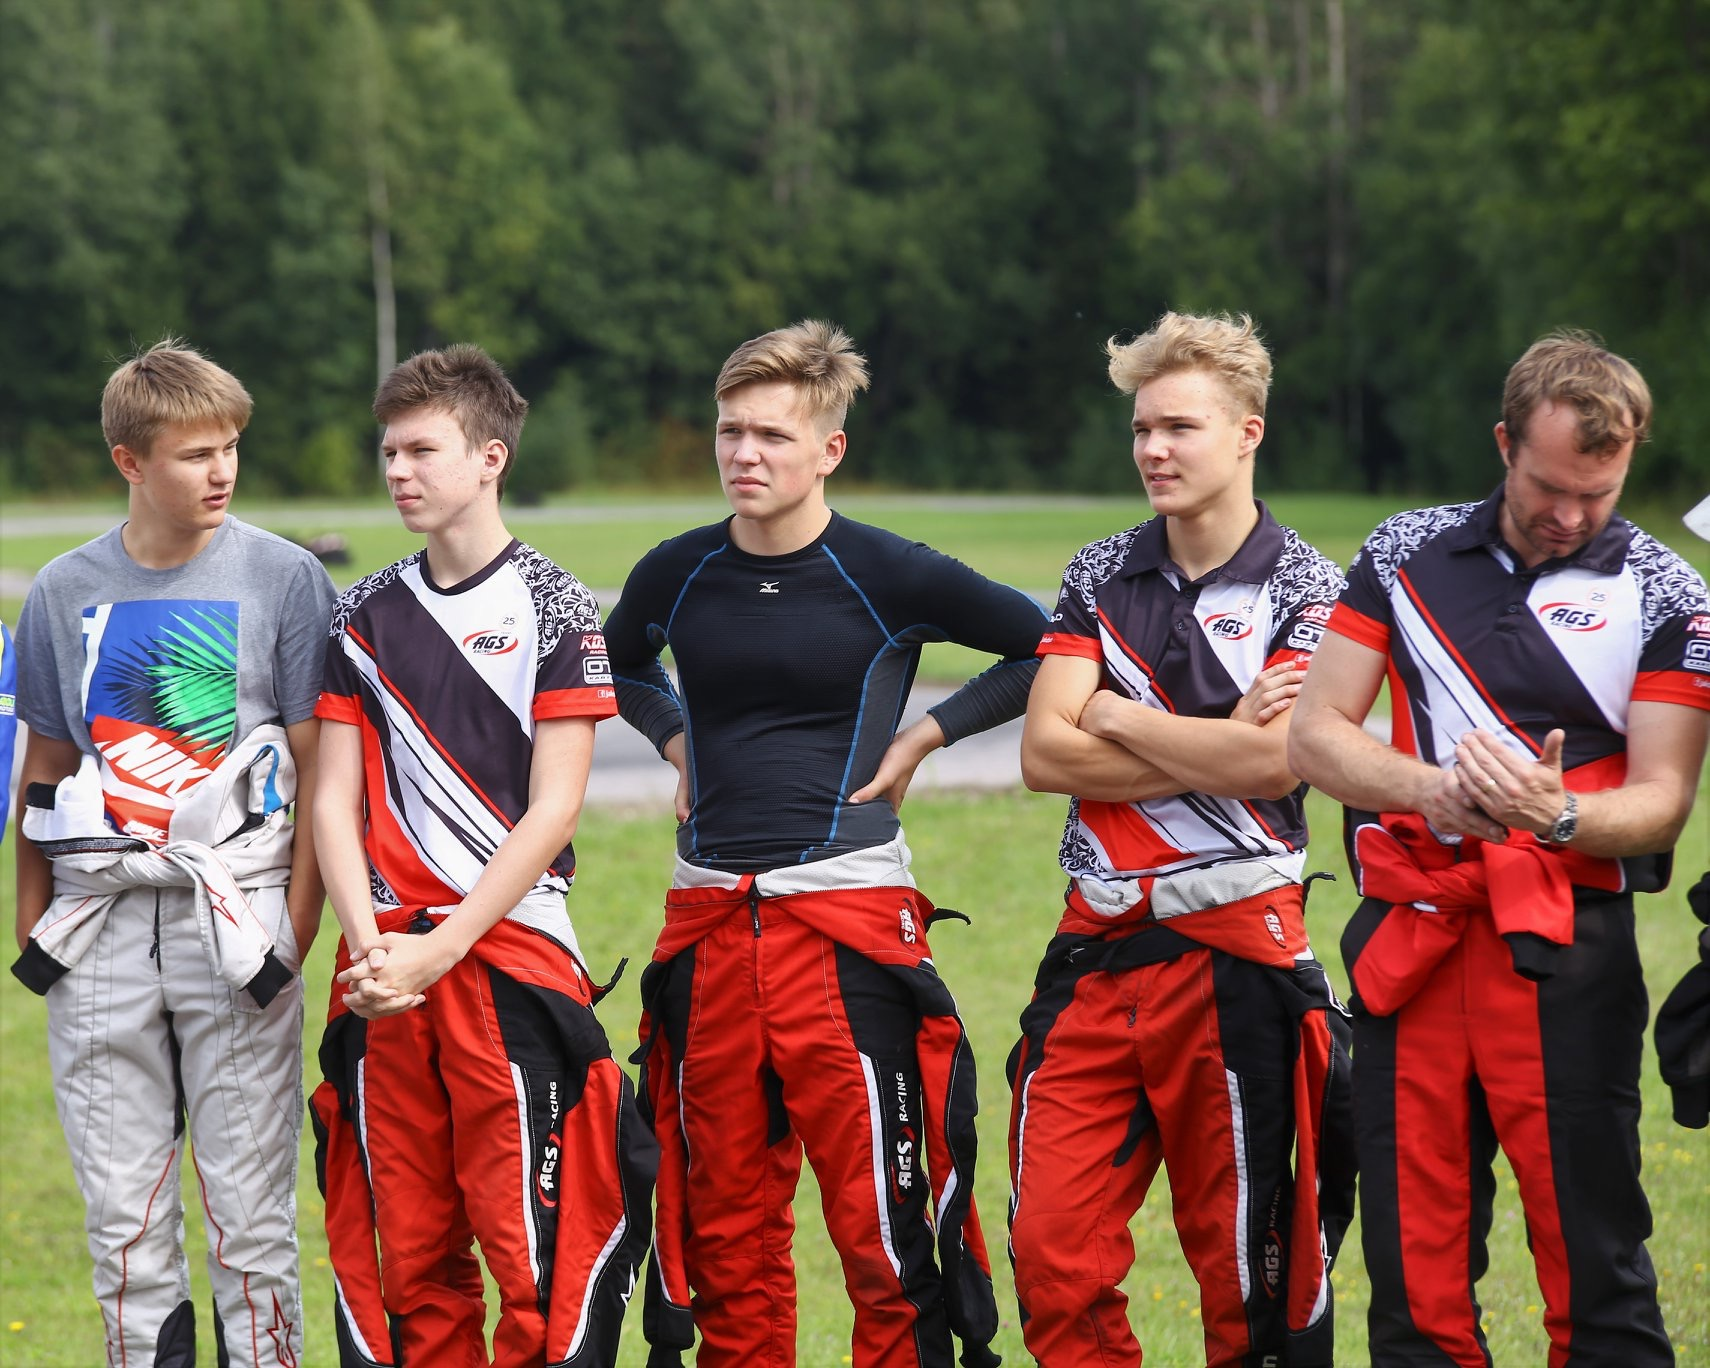 AGS Racing in Rapla 2019